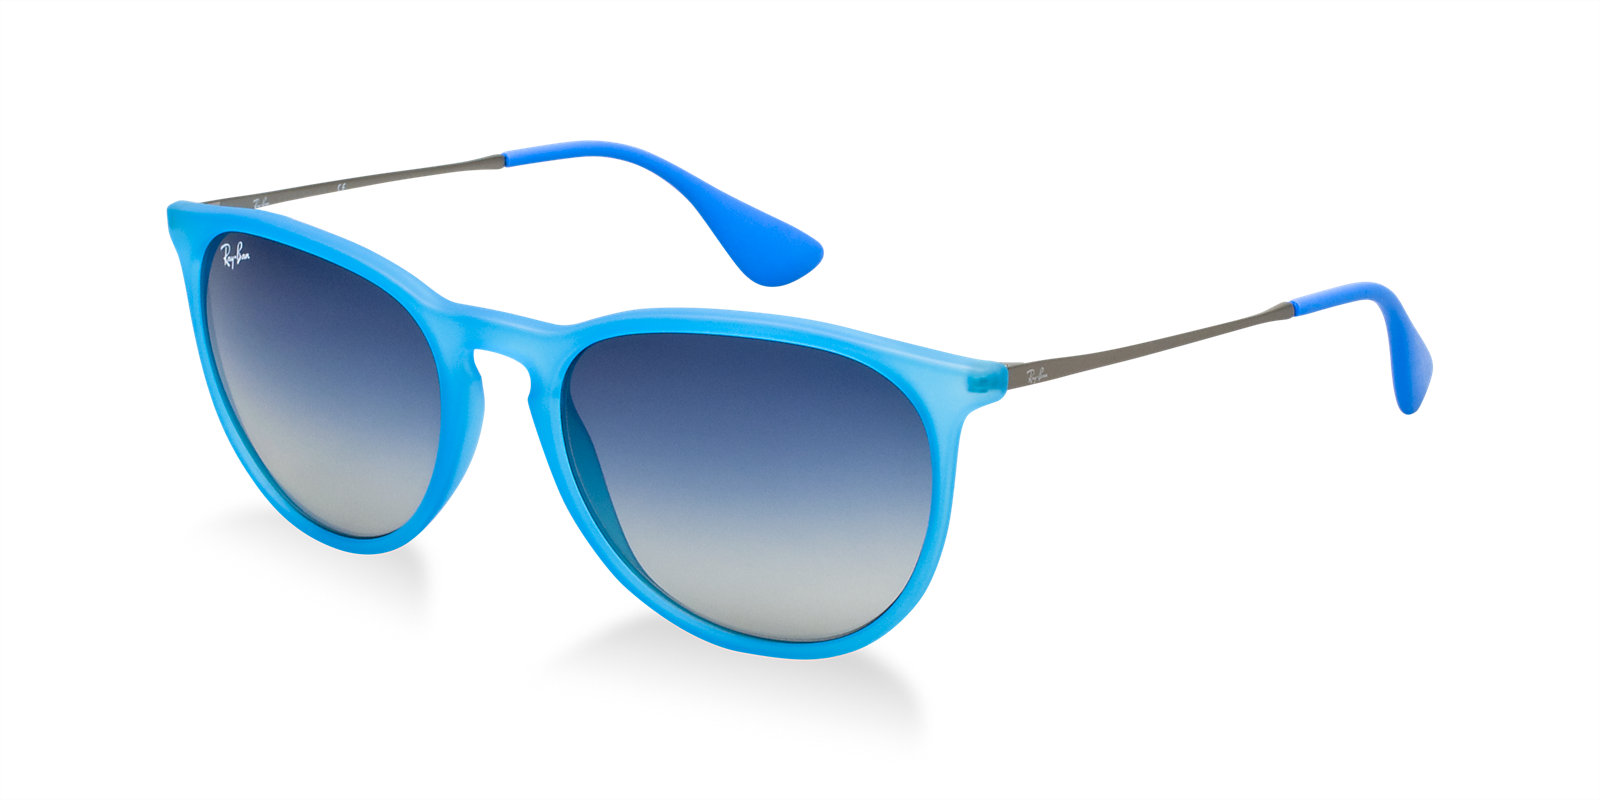 Ray-Ban-Sunglasses-for-Men (19)